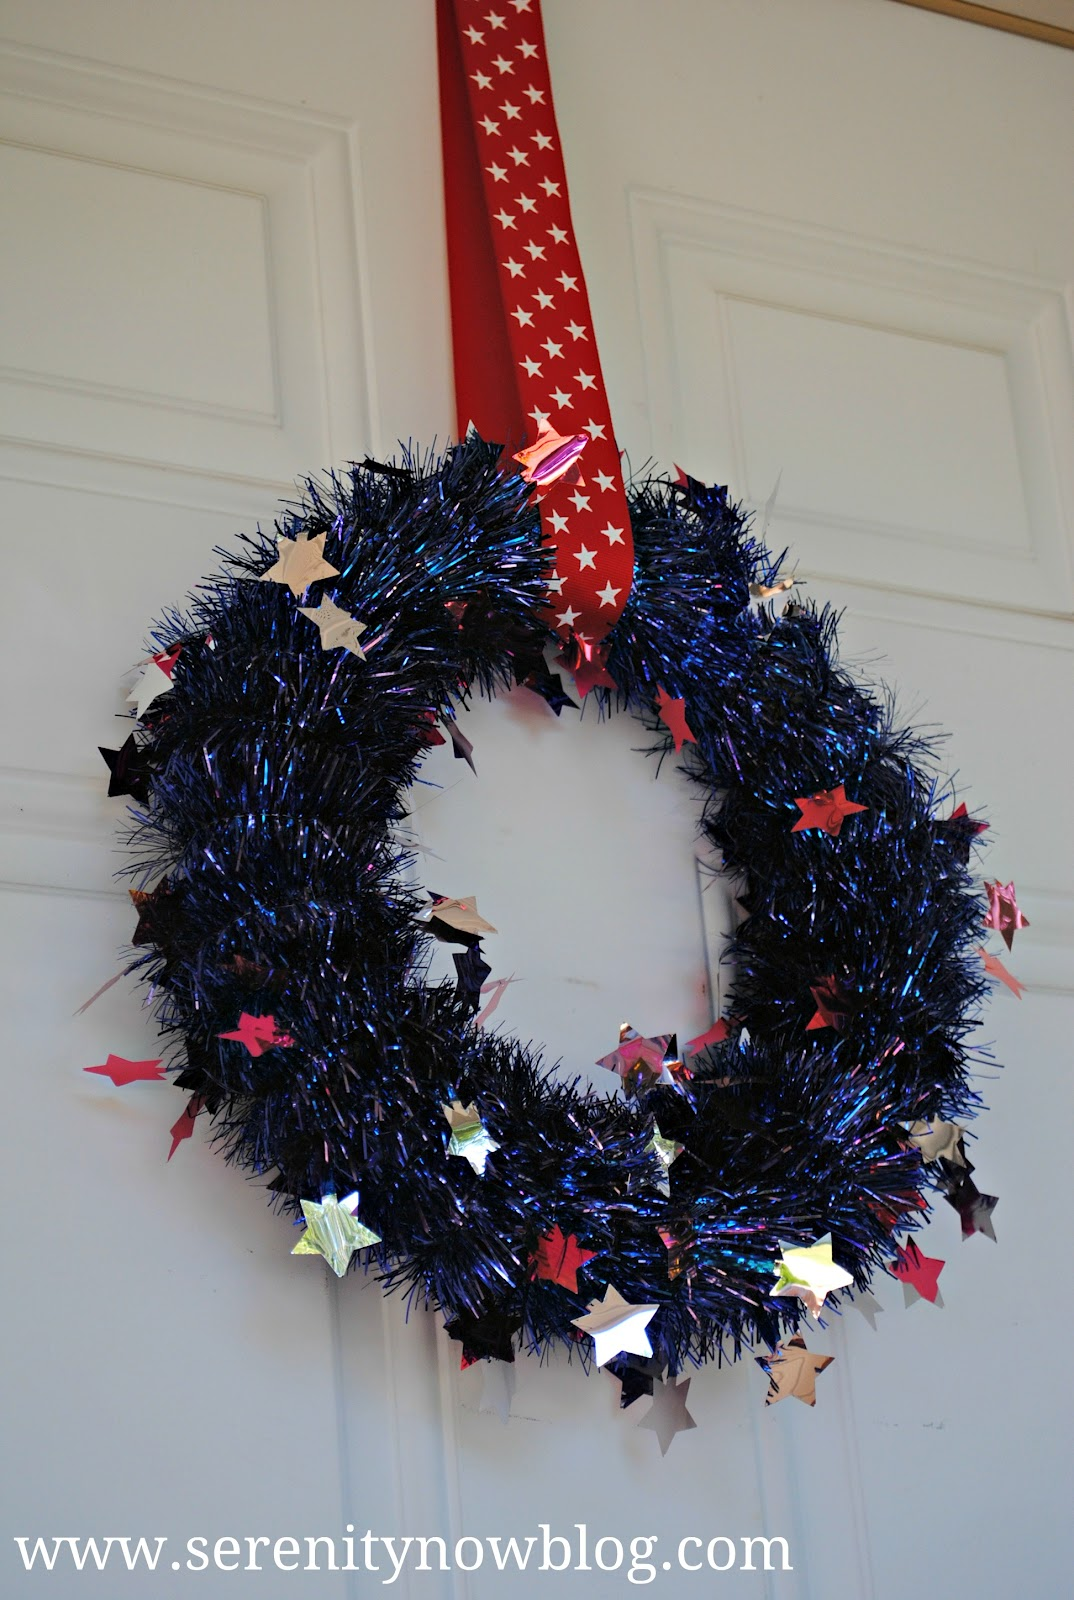 Serenity Now: 4th of July Tinsel Wreath (Last Minute Decorations)